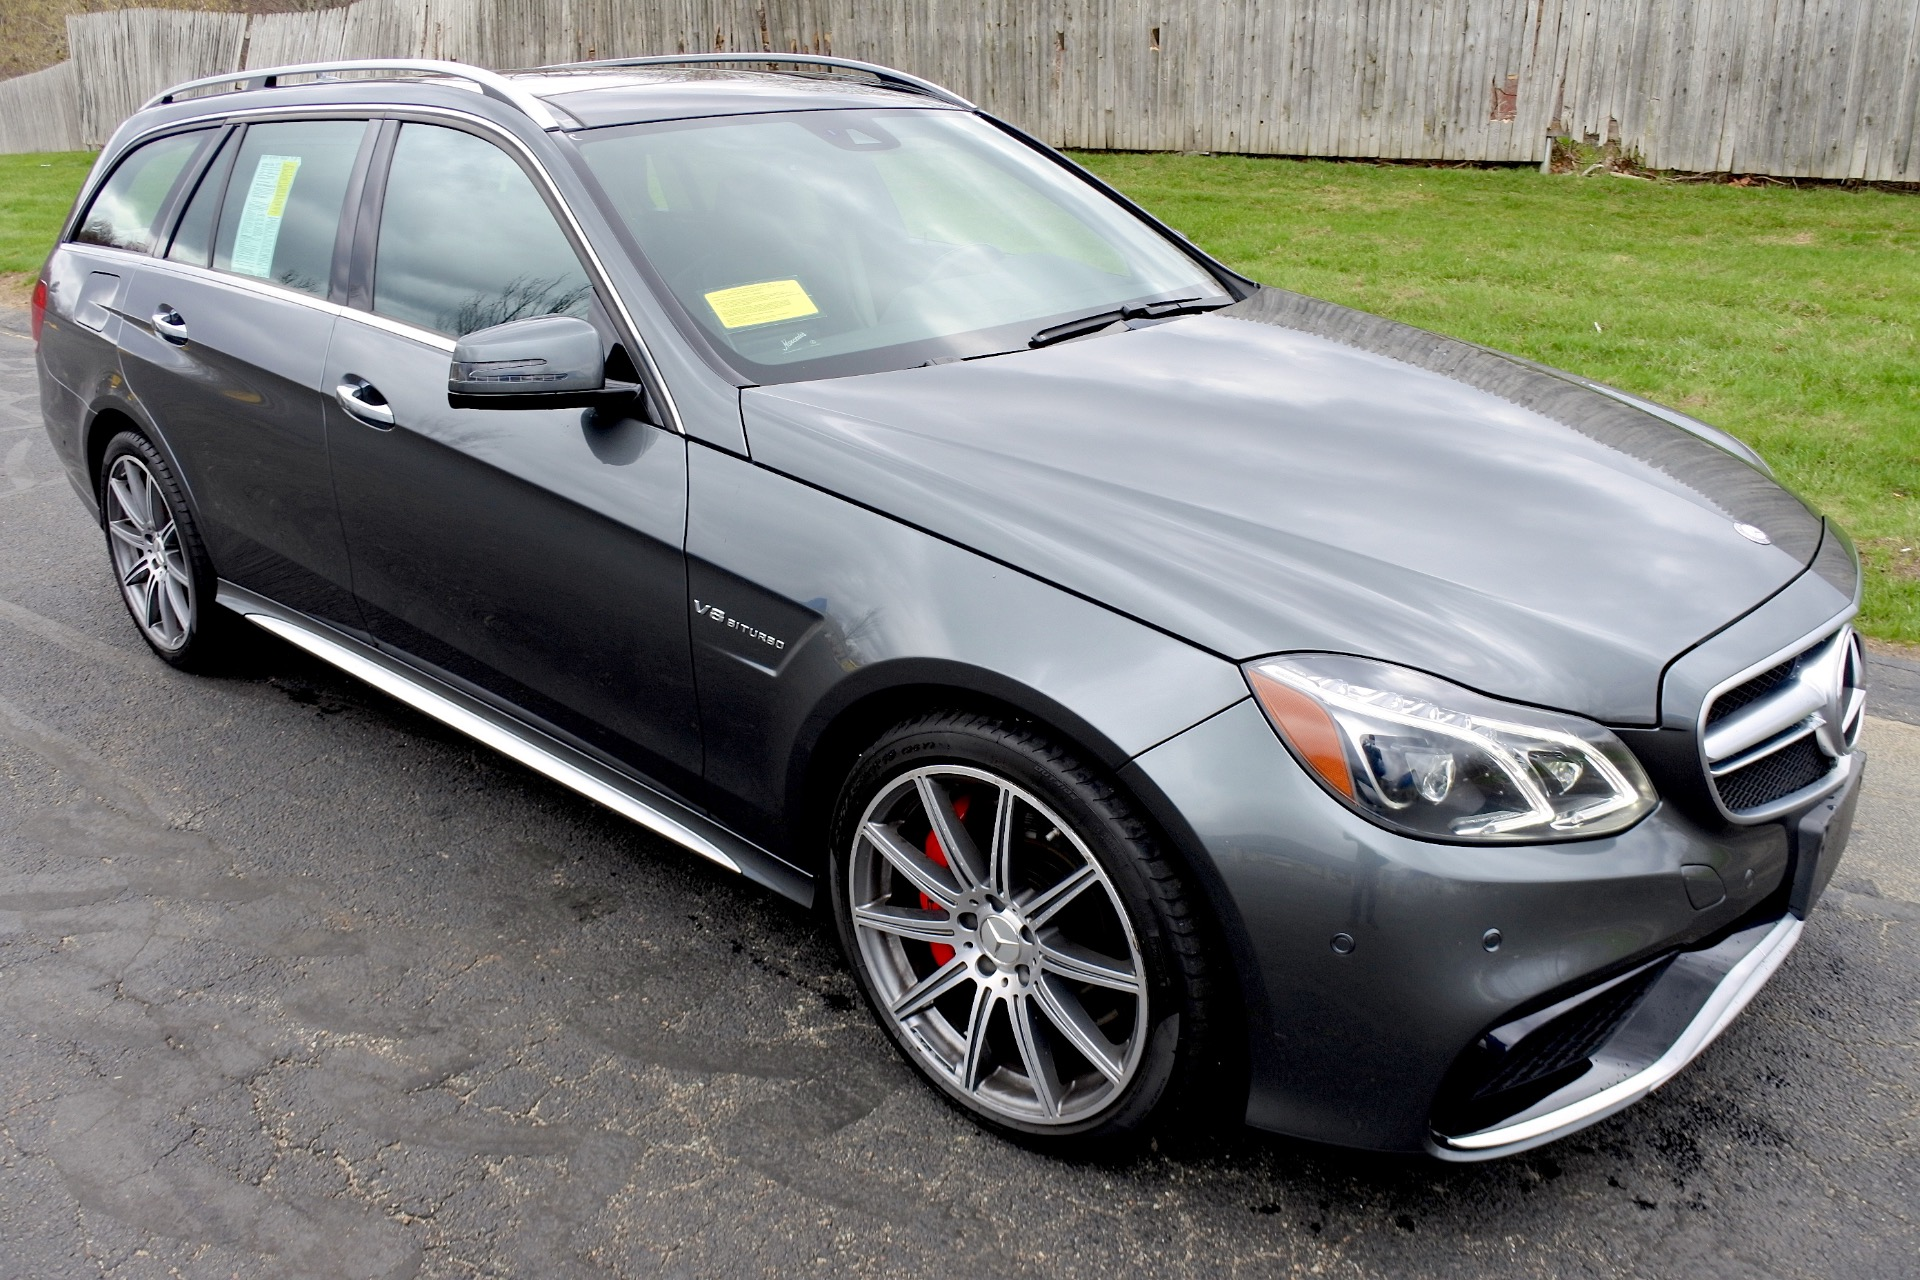 Used 2014 Mercedes-Benz E-class E63 S AMG Wagon 4MATIC Used 2014 Mercedes-Benz E-class E63 S AMG Wagon 4MATIC for sale  at Metro West Motorcars LLC in Shrewsbury MA 5